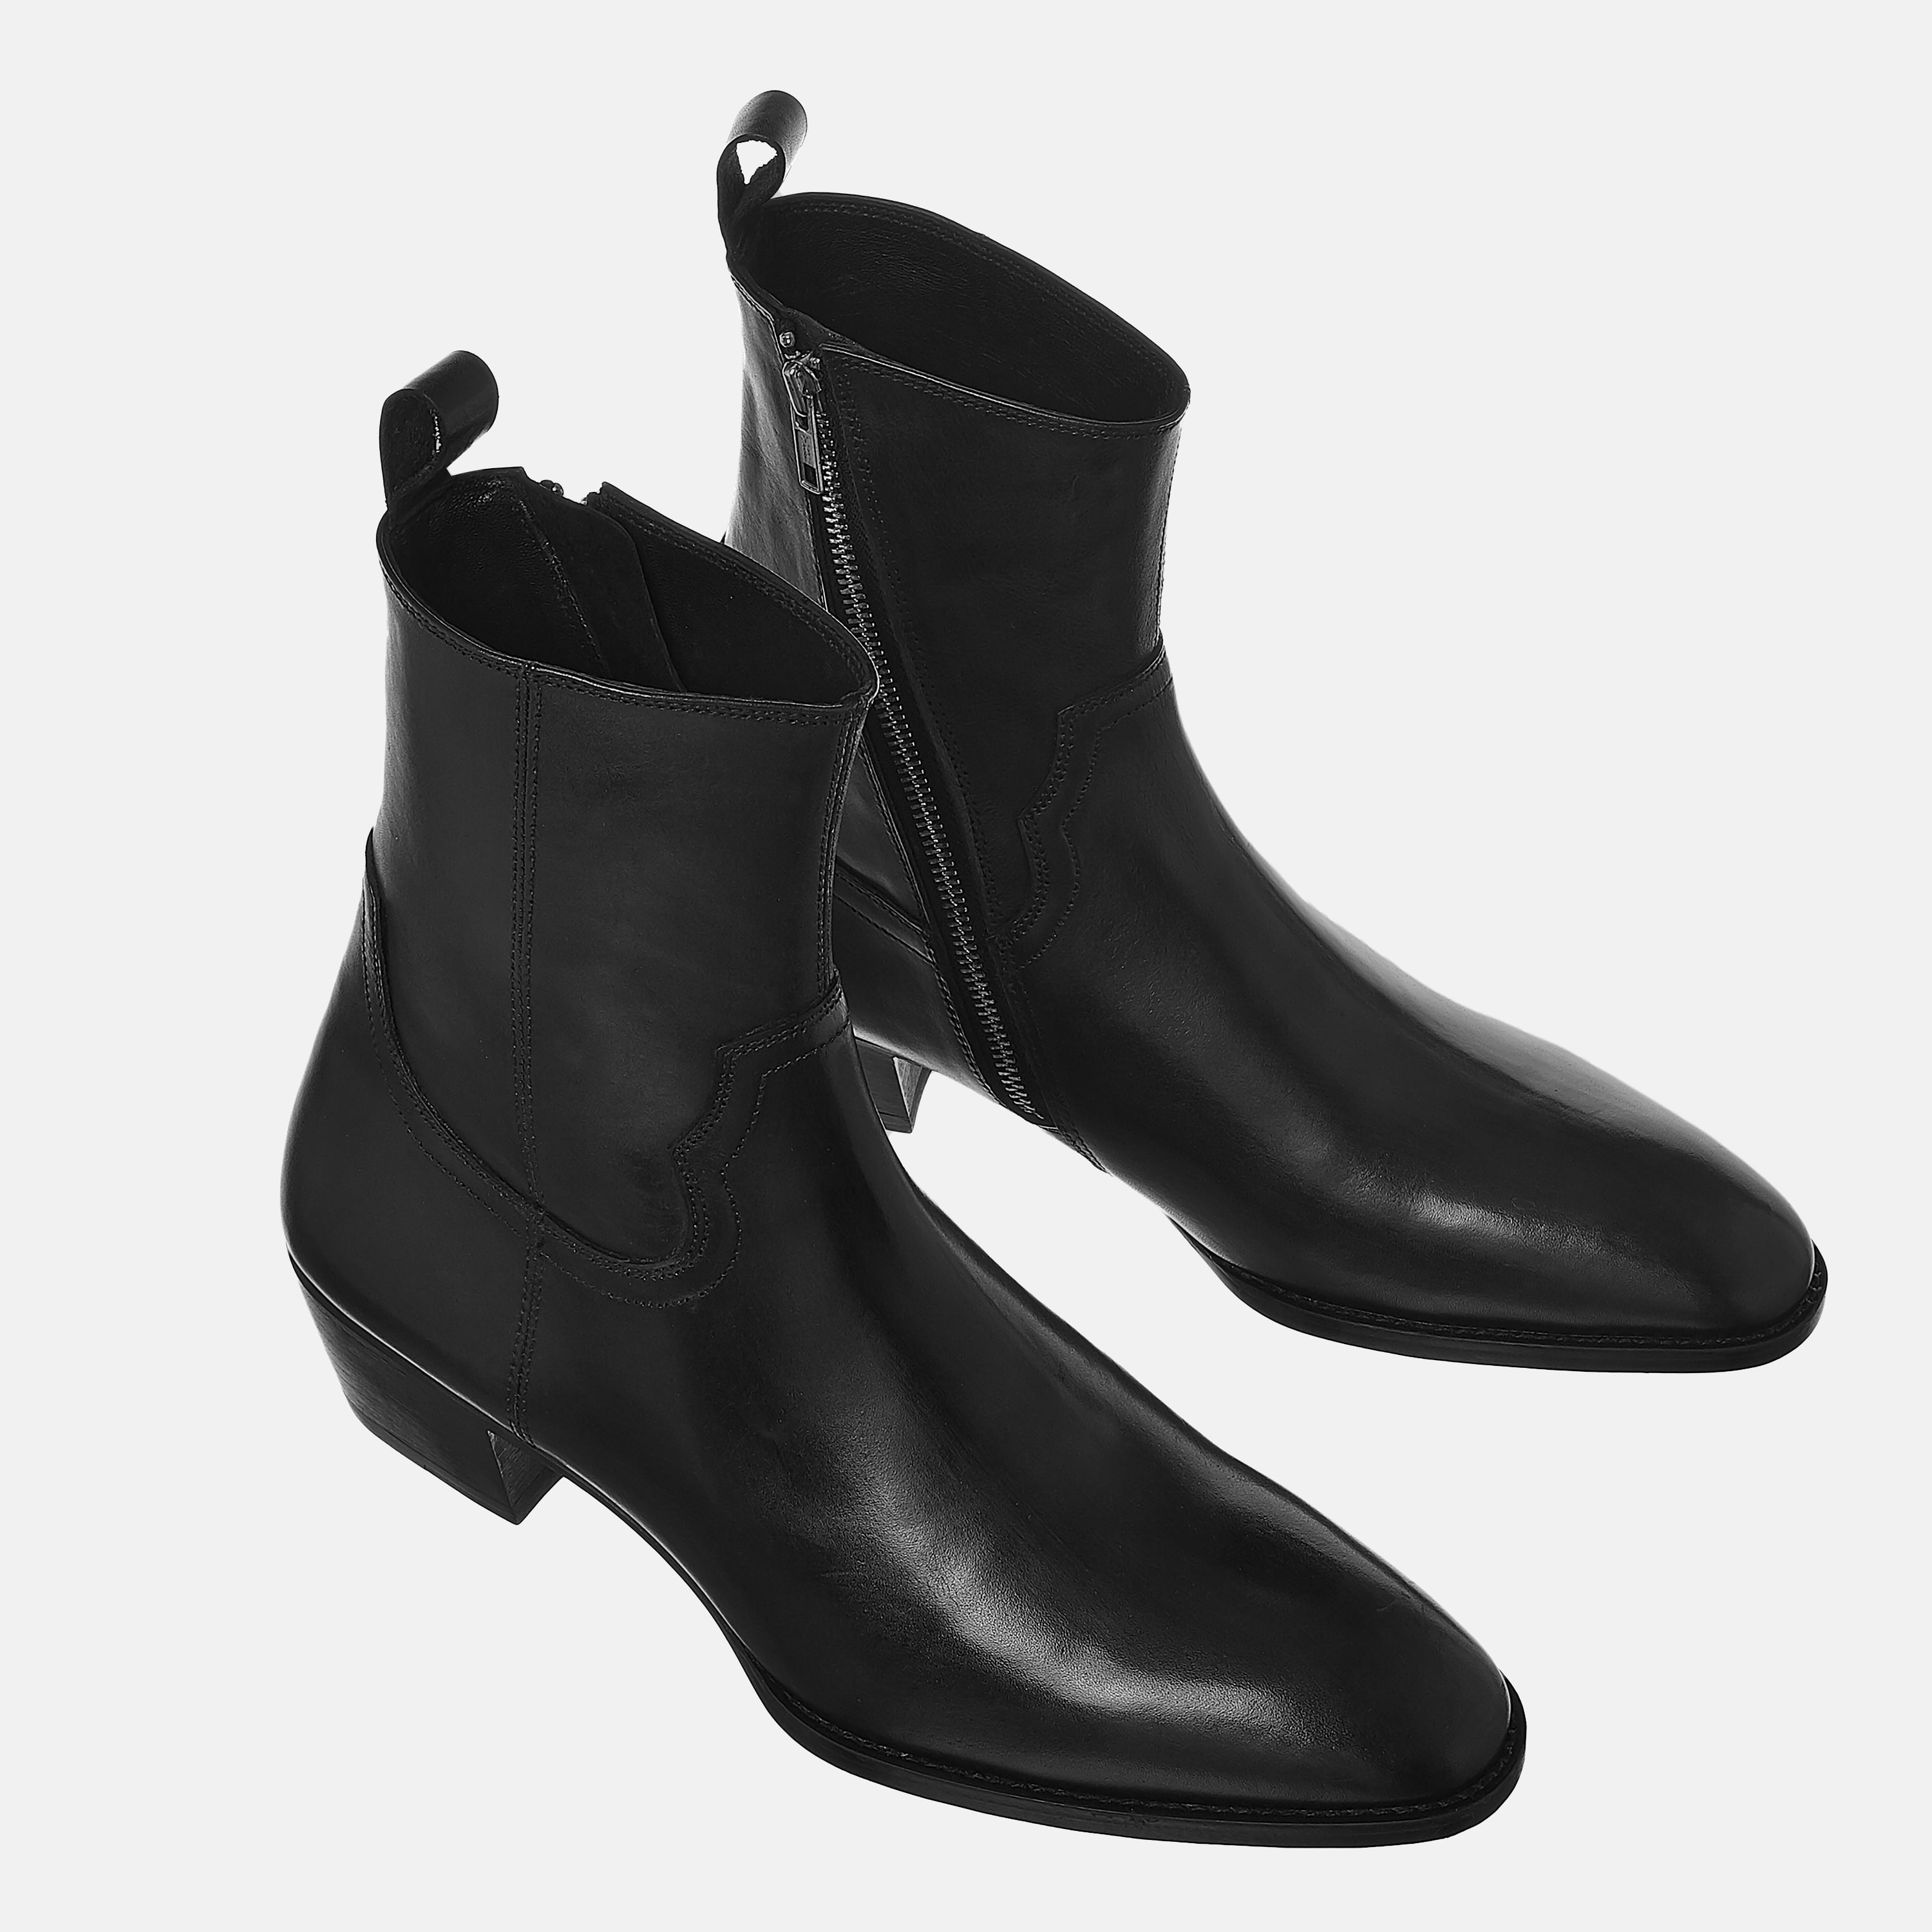 Leather Zip Boots In Black Leather Zip Boots In Black SS2020 Product thumbnail 1